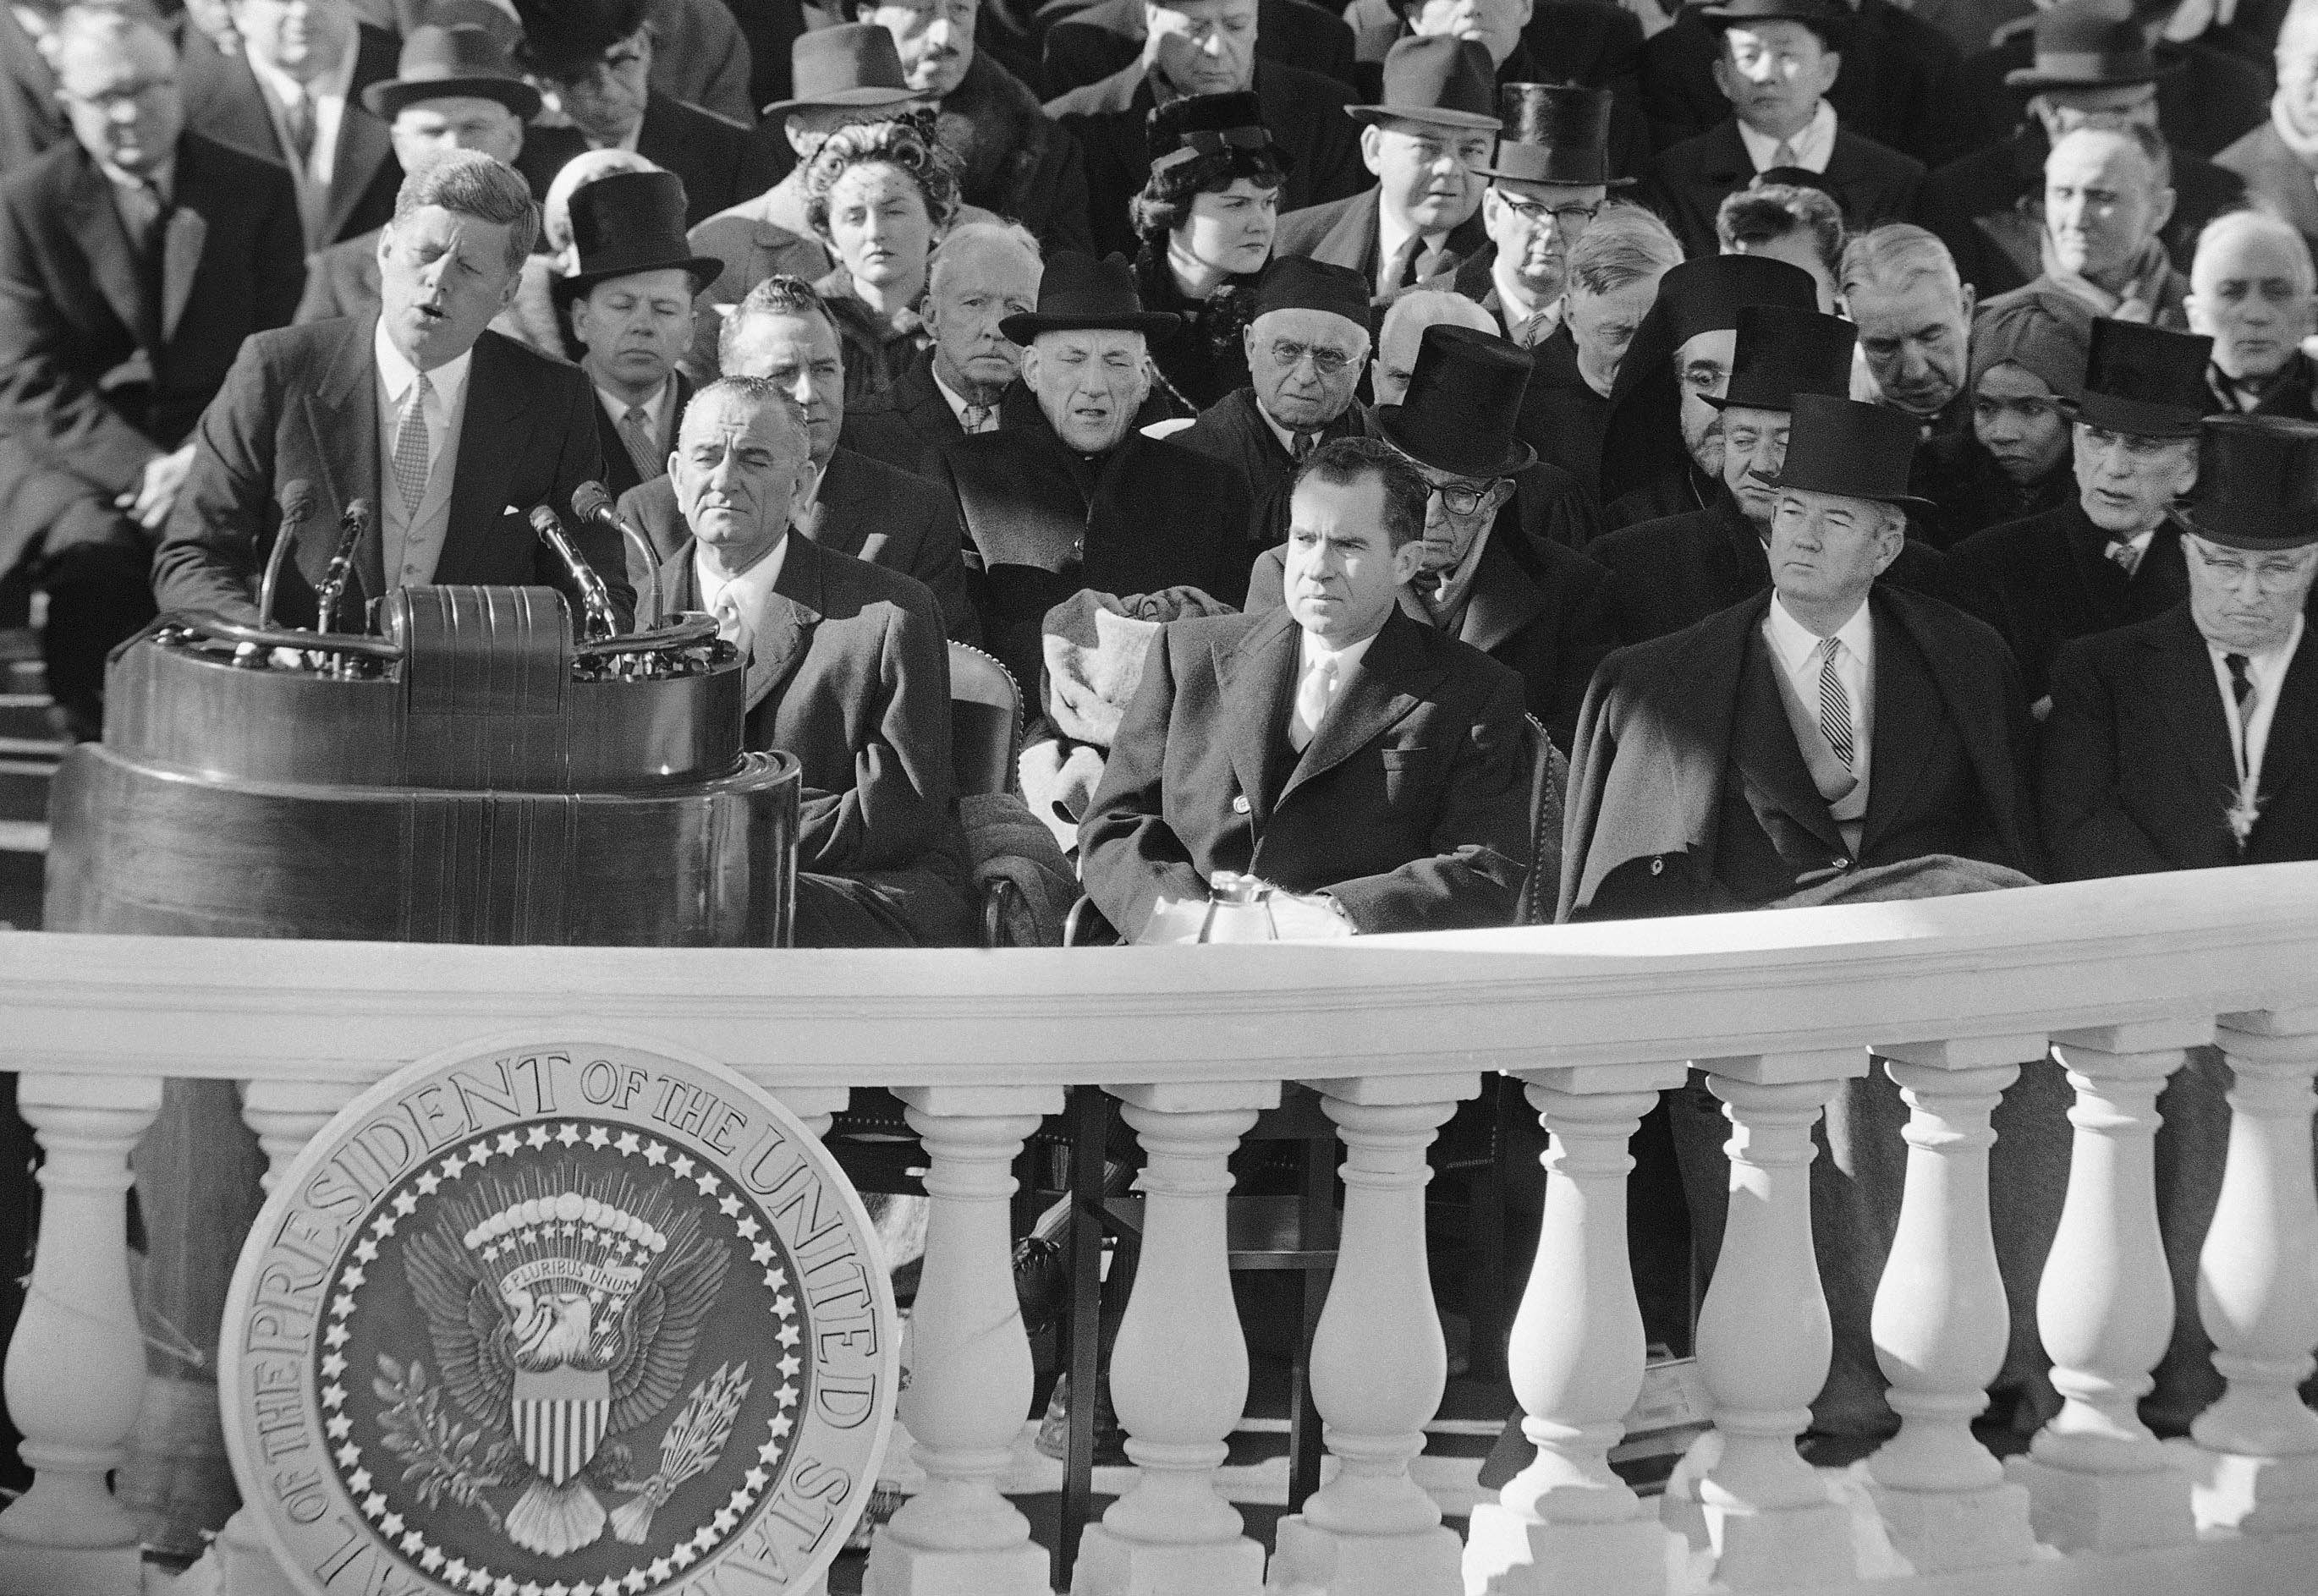 <div class='meta'><div class='origin-logo' data-origin='none'></div><span class='caption-text' data-credit='ASSOCIATED PRESS'>FILE - In this Jan. 20, 1961, black and white file photo,President John F. Kennedy gives his inaugural address at the Capitol in Washington after taking the oath of office.</span></div>